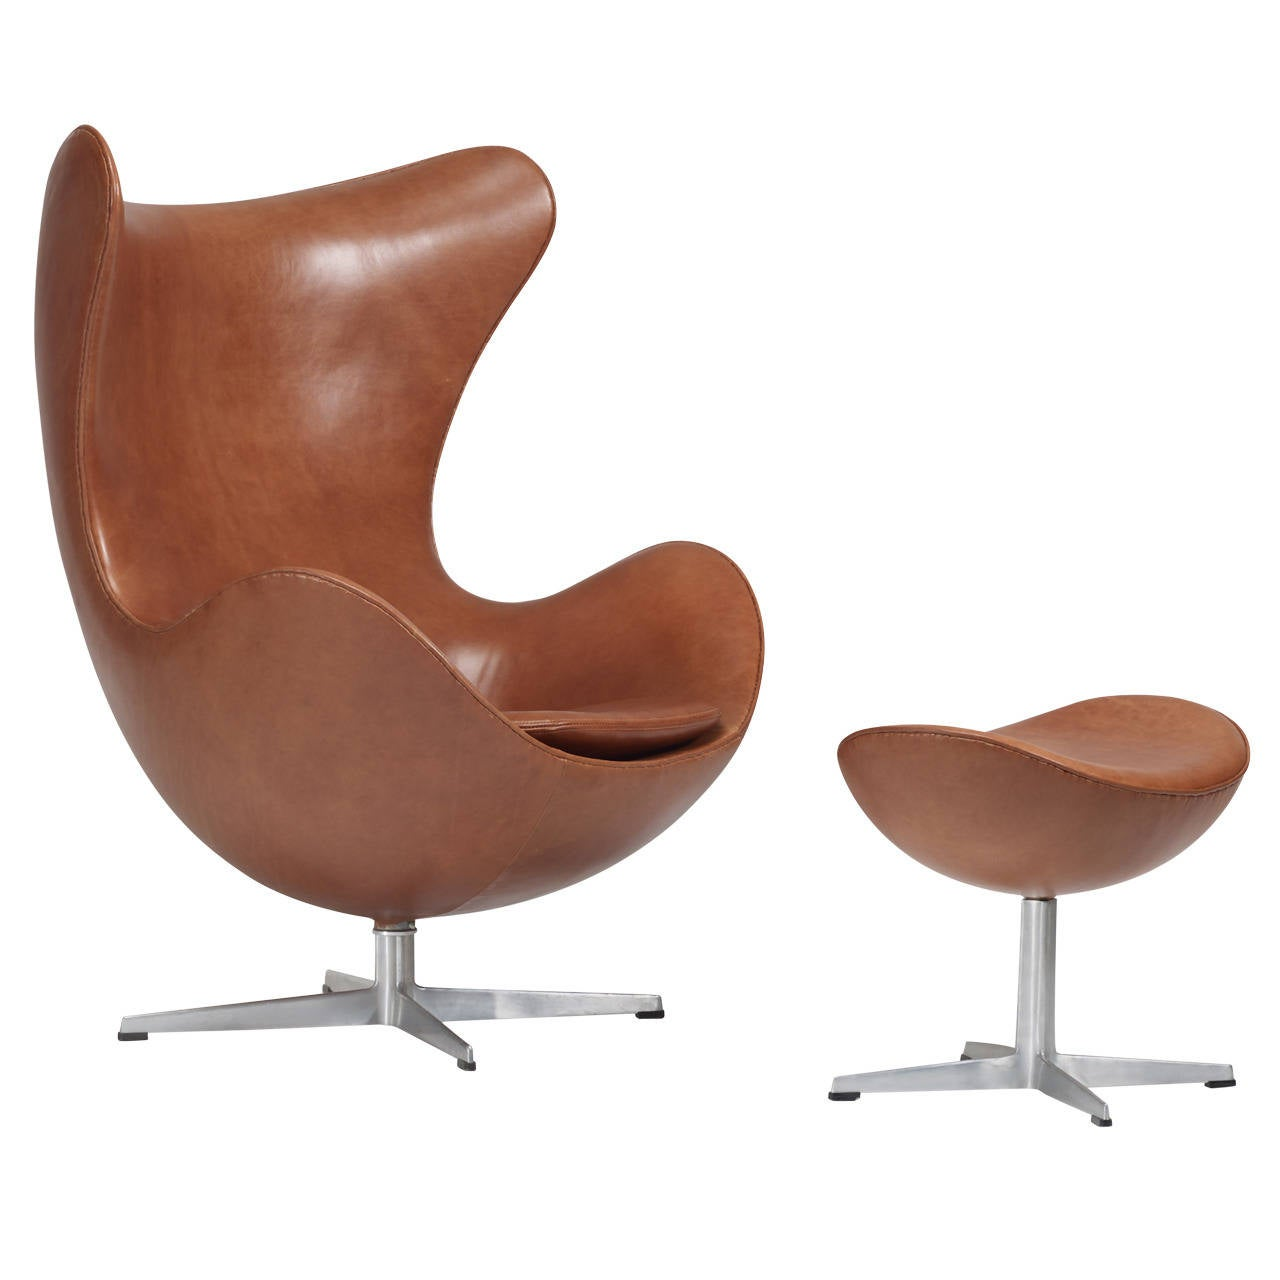 Egg Lounge Sessel Fritz Hansen Egg Chair Arne Jacobsen Egg Chair Buy The Fritz